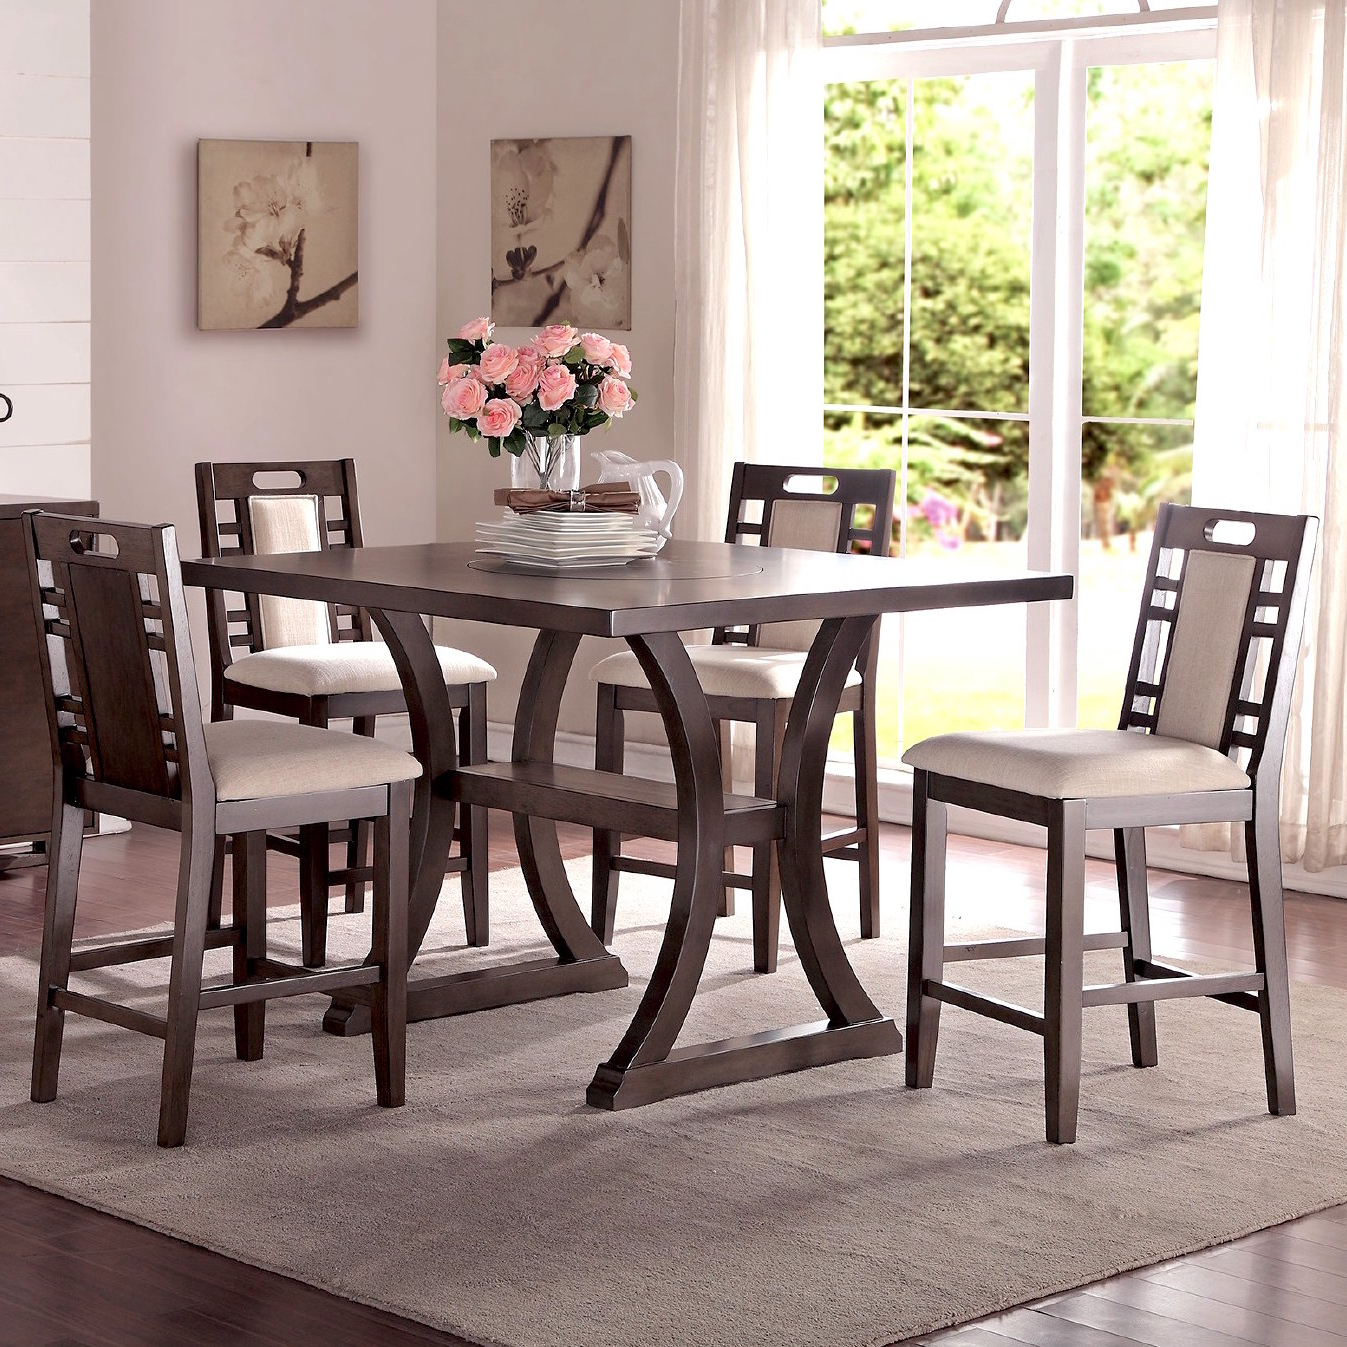 Infini Furnishings Adele 5 Piece Counter Height Dining Set With Regard To Well Liked Calla 5 Piece Dining Sets (View 12 of 20)